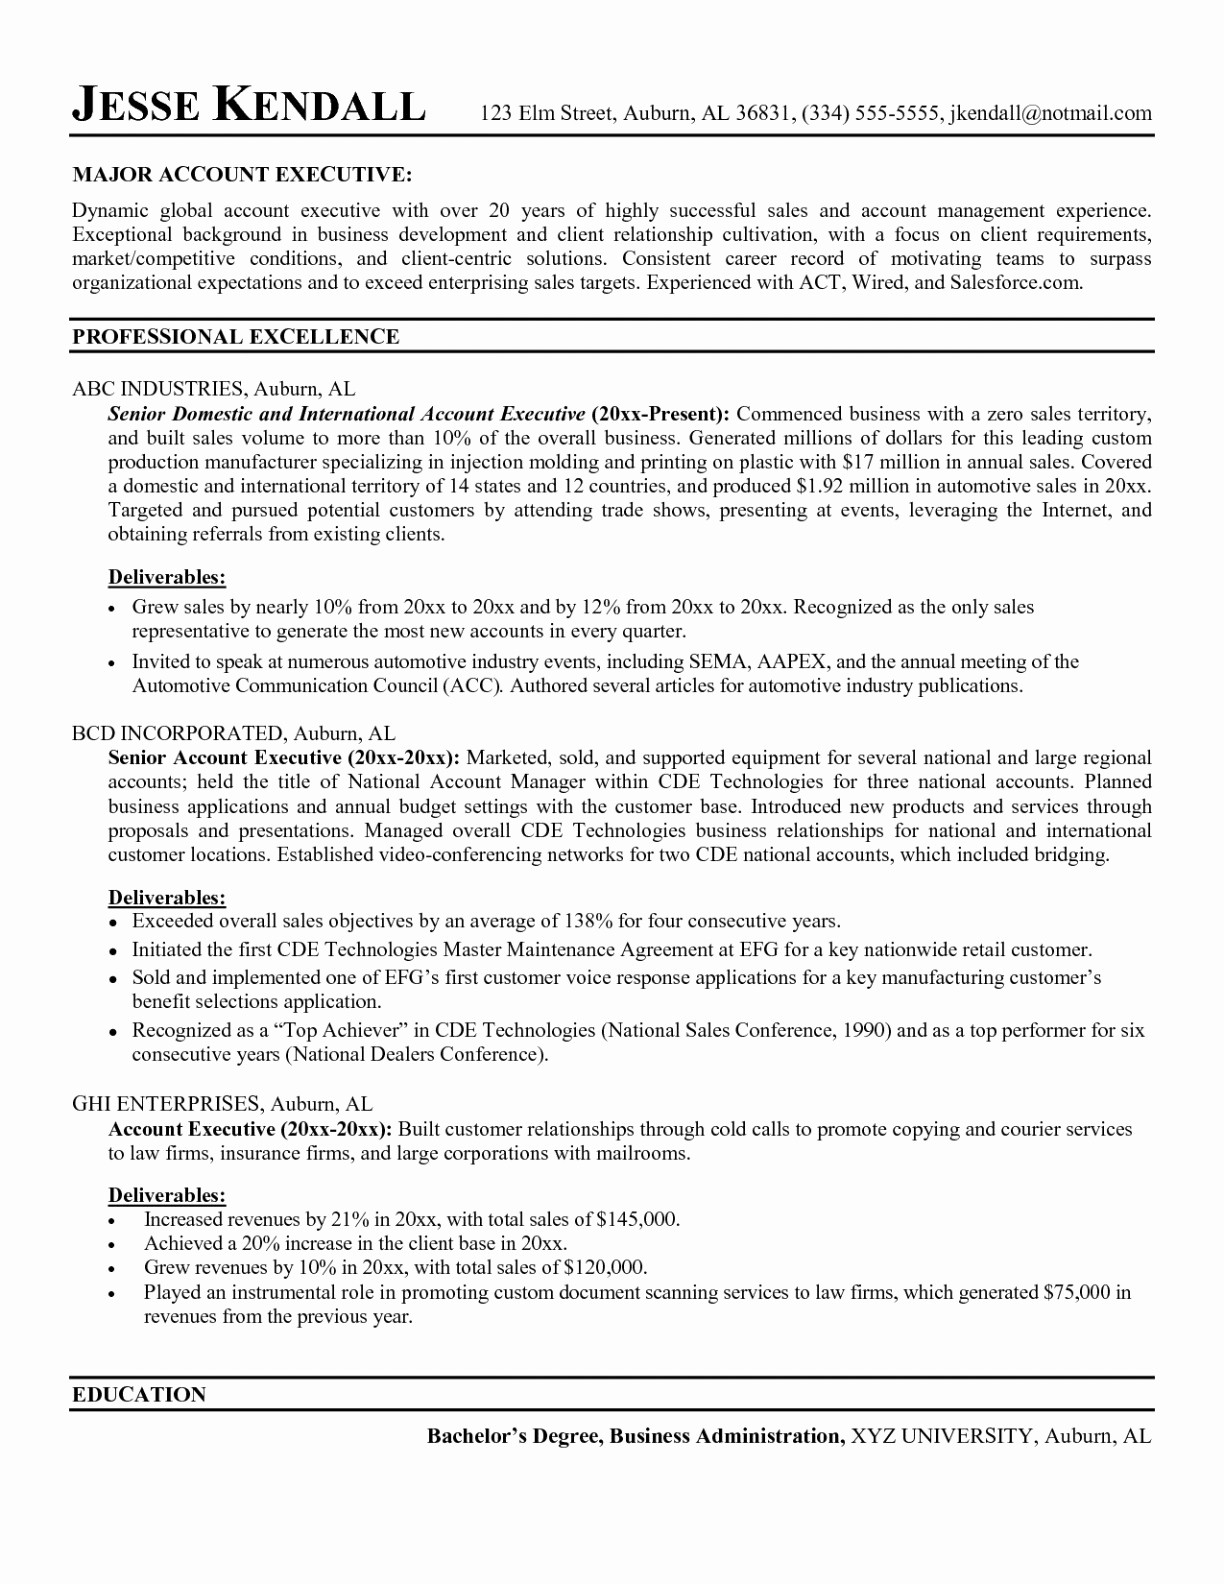 Resume for Car Salesman - Best Resumes for Sales Executives Resume Resume Examples Rmqnq6nazd